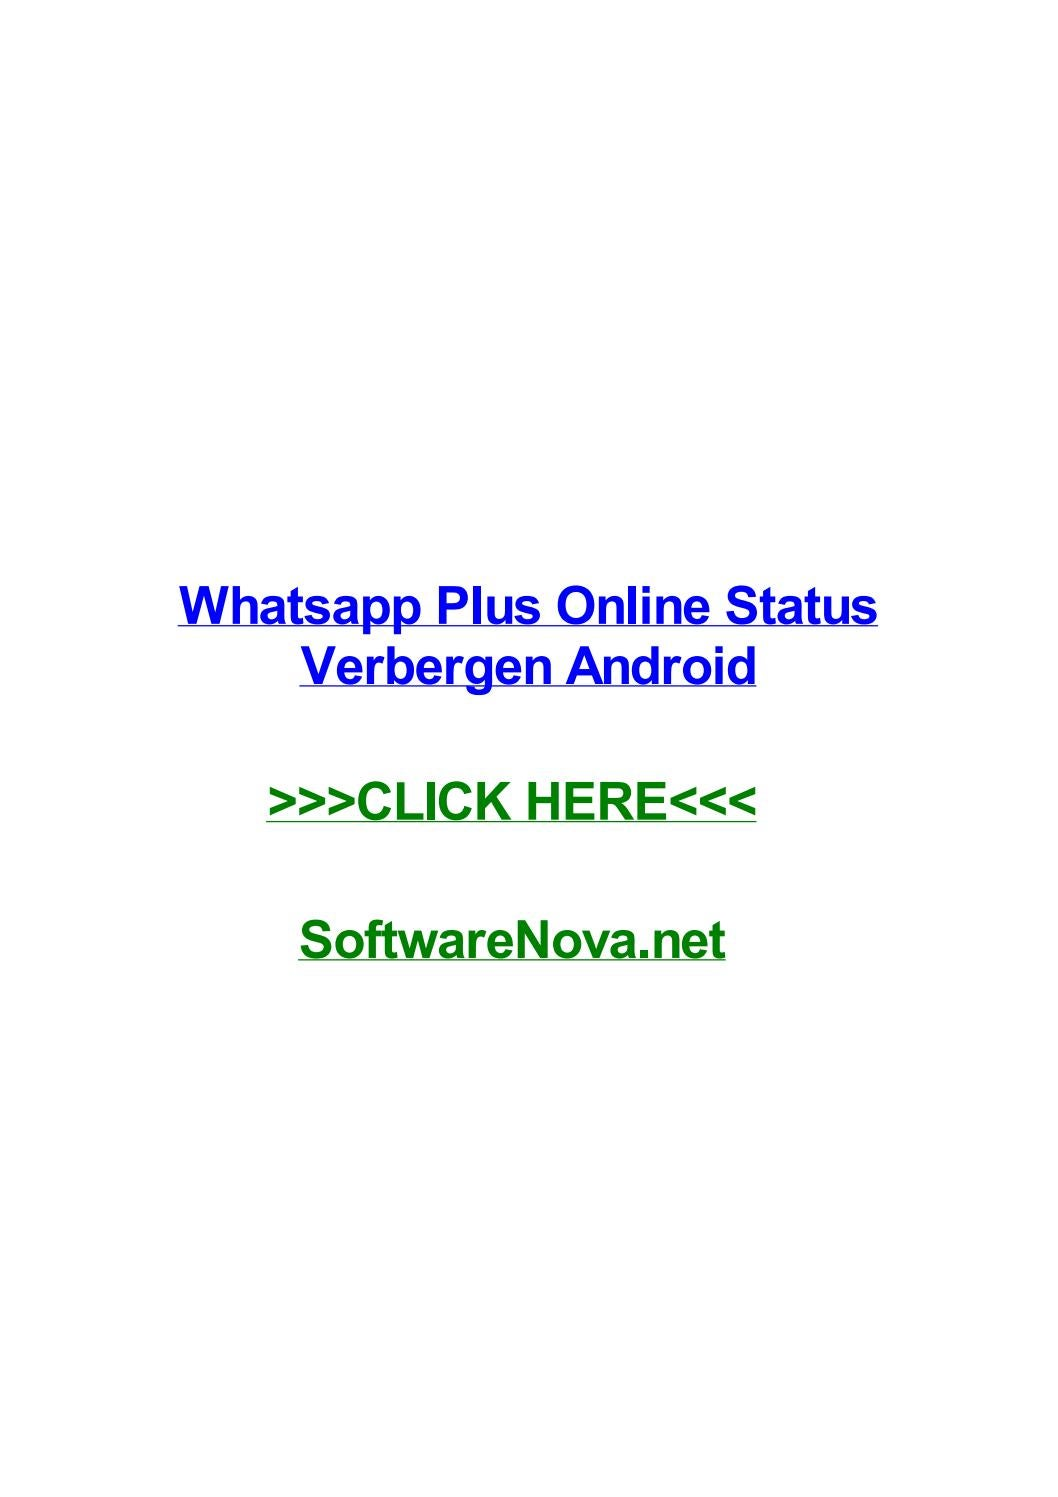 Whatsapp plus online status verbergen android by